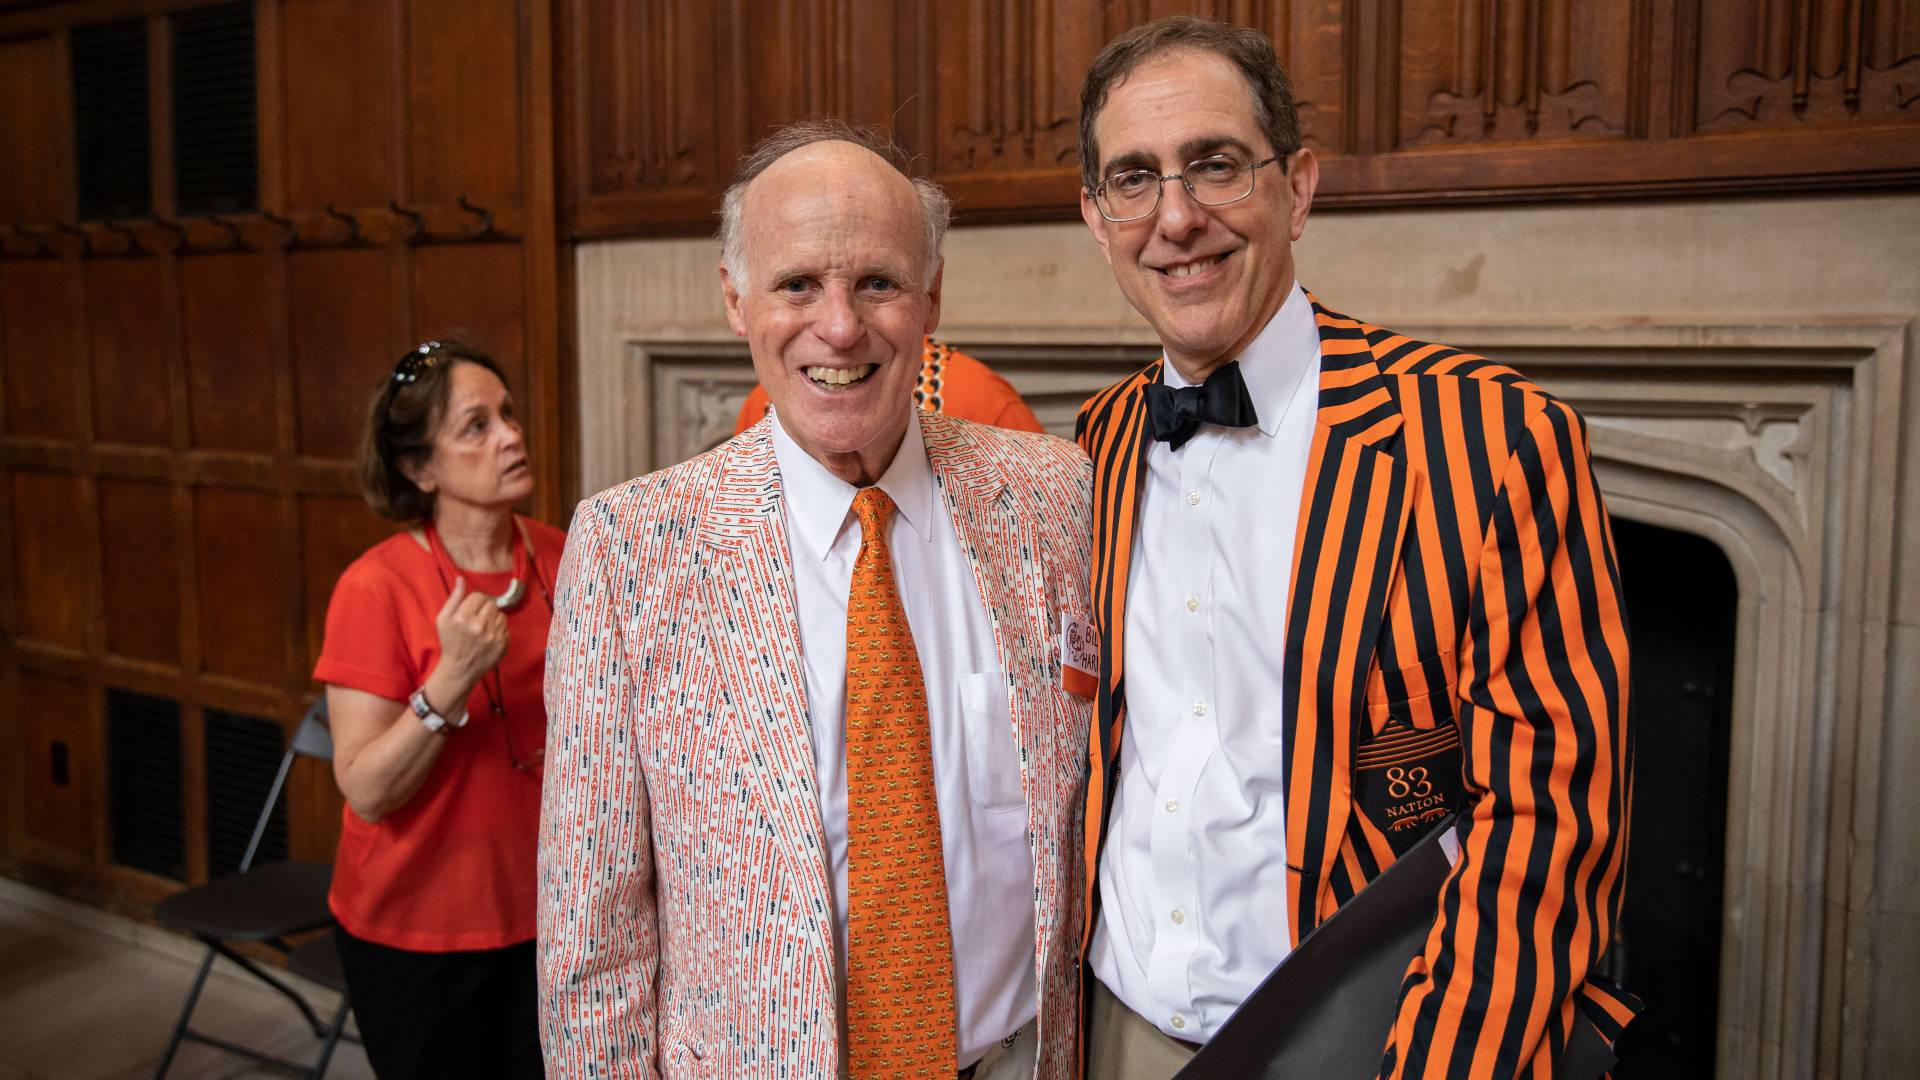 Bill Harman '63 and Christopher L. Eisgruber '83